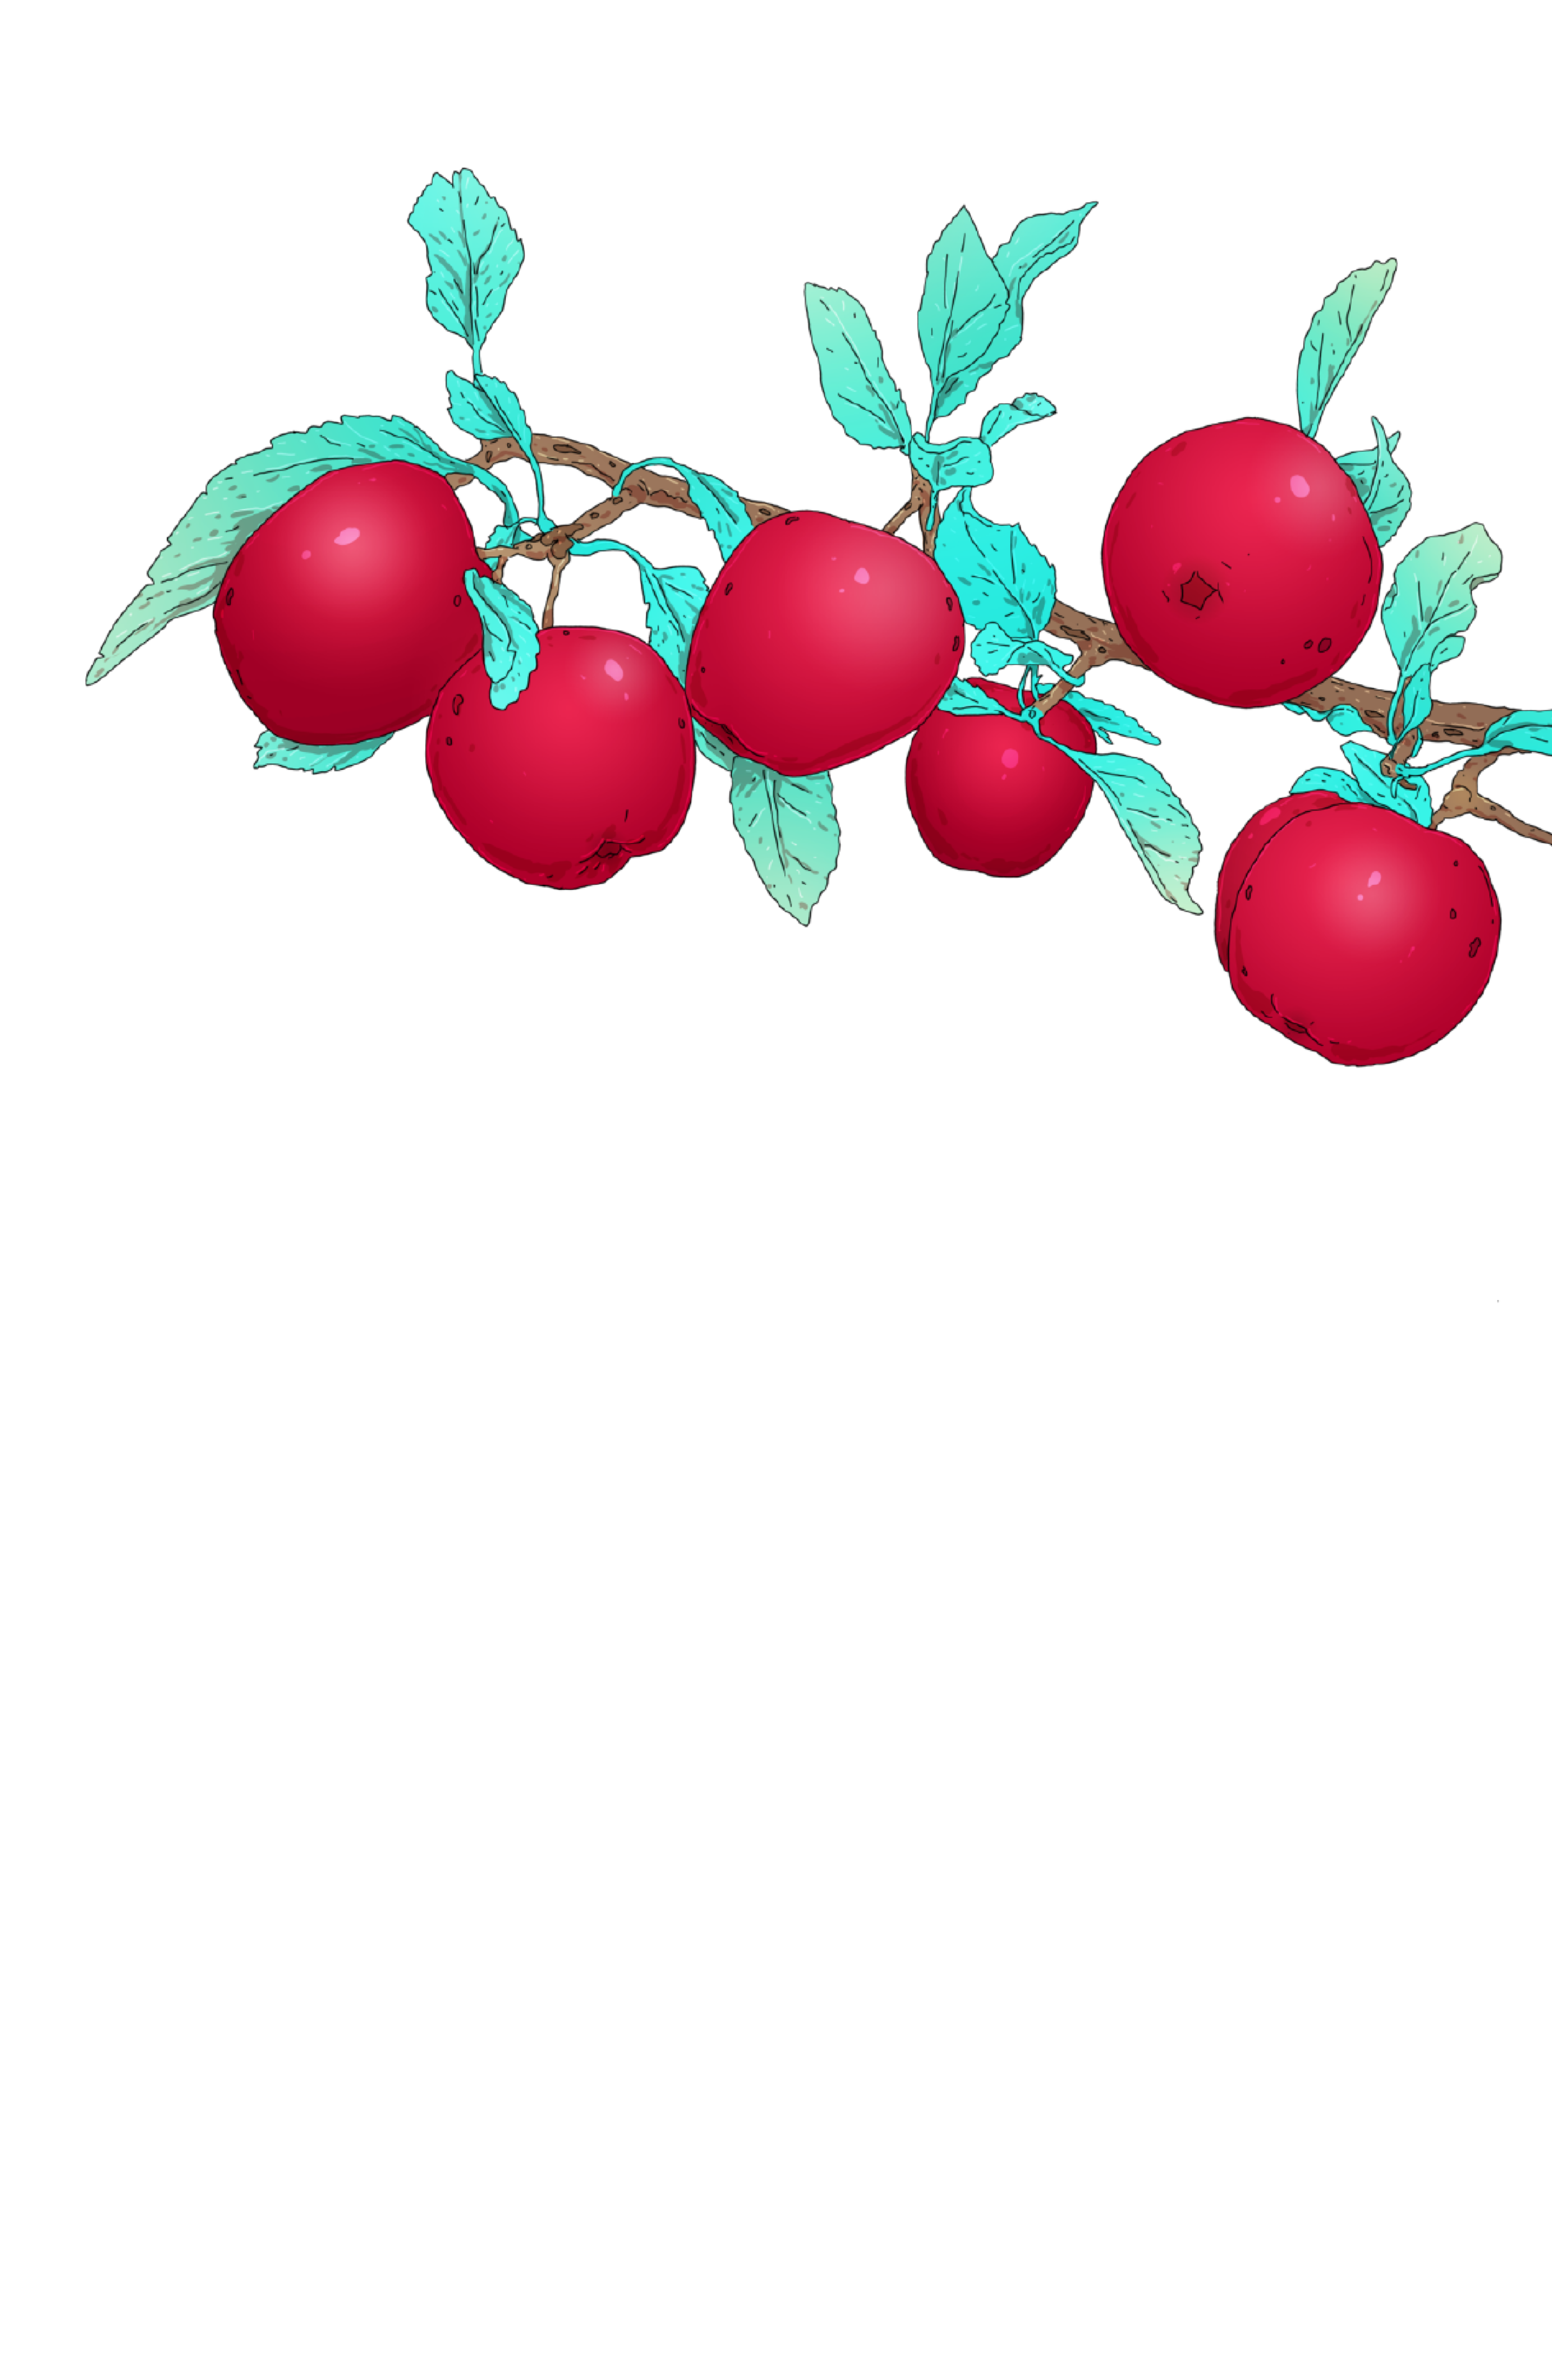 Apples_coming soon-01.png